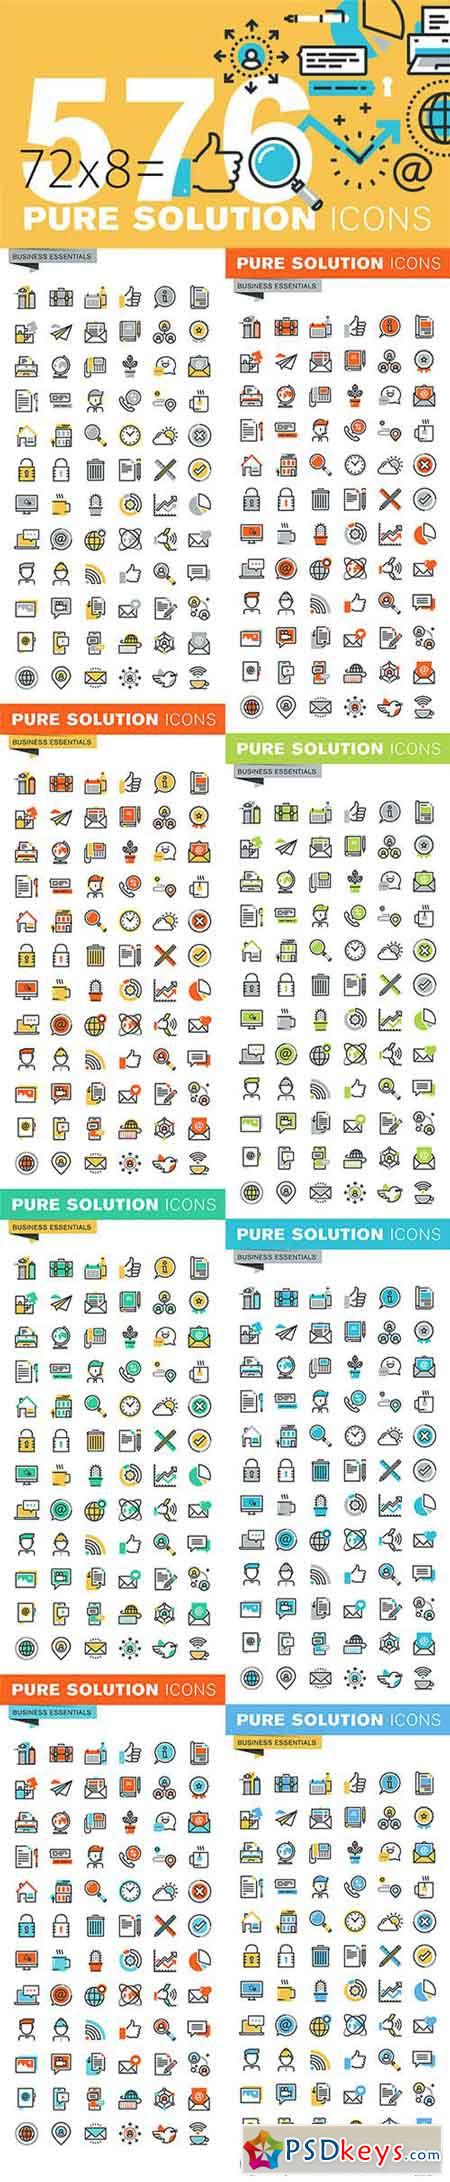 Set of Thin Line Business Icons 522300